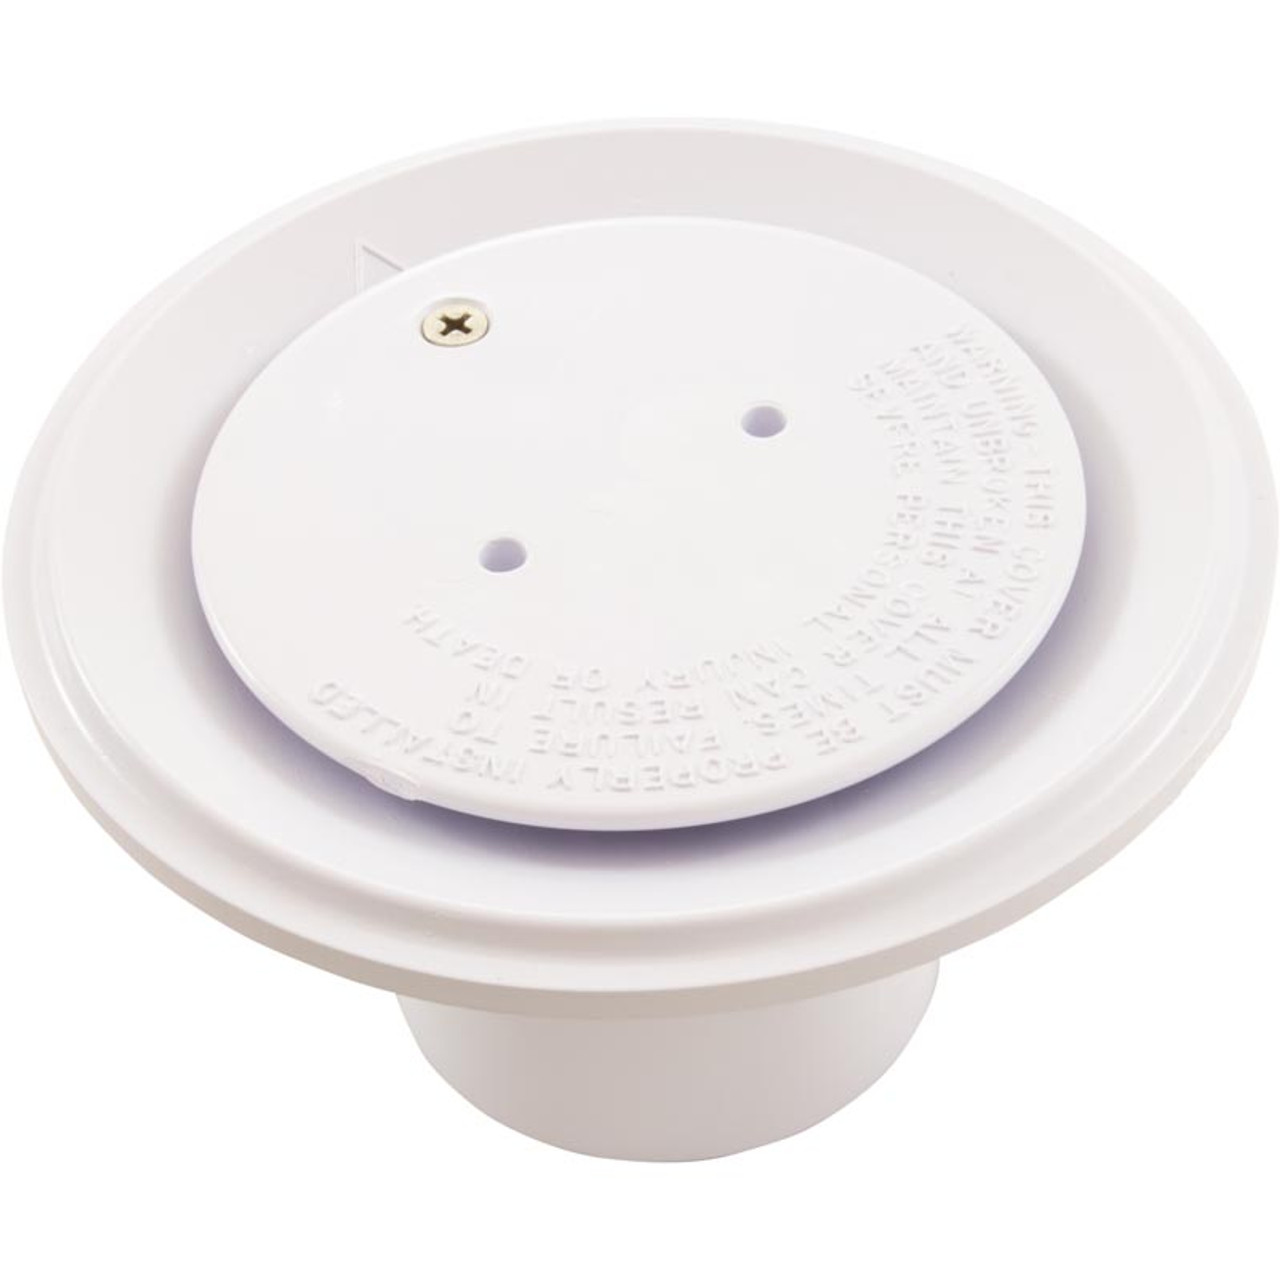 "STA-RITE PENTAIR 08417 Swimming Pool Spa FLOOR DRAIN INLET COVER White 2/"" NEW"